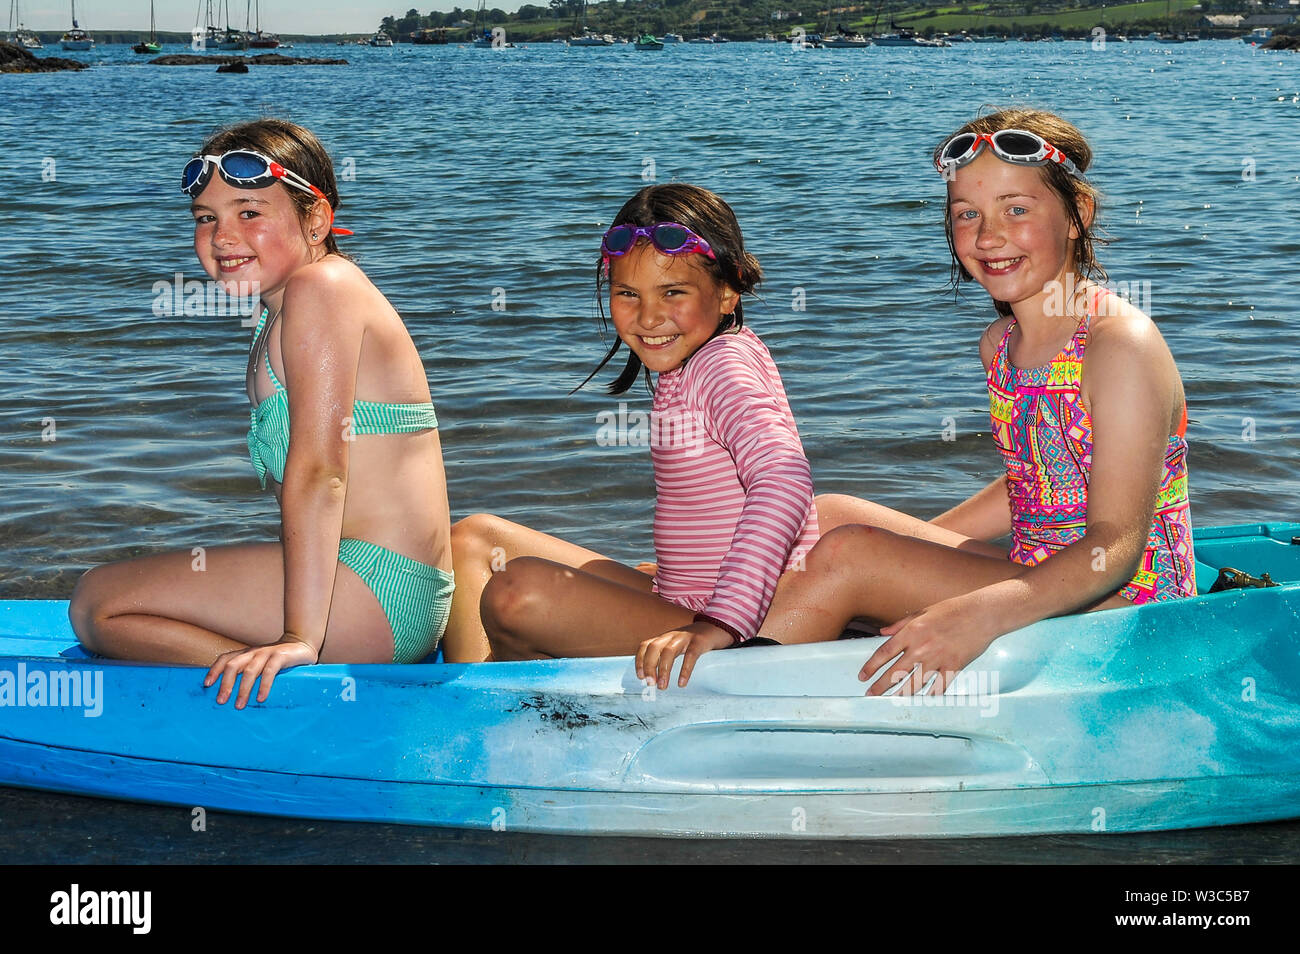 schull-west-cork-ireland-14th-july-2019-on-another-scorchingly-hot-summers-day-in-west-cork-locals-and-tourists-alike-flocked-to-the-beaches-at-schull-beach-were-heidi-hogan-schull-hannah-odriscoll-ballydehob-abd-emily-hunsberry-from-clonakilty-credit-andy-gibsonalamy-live-news-W3C5B7.jpg